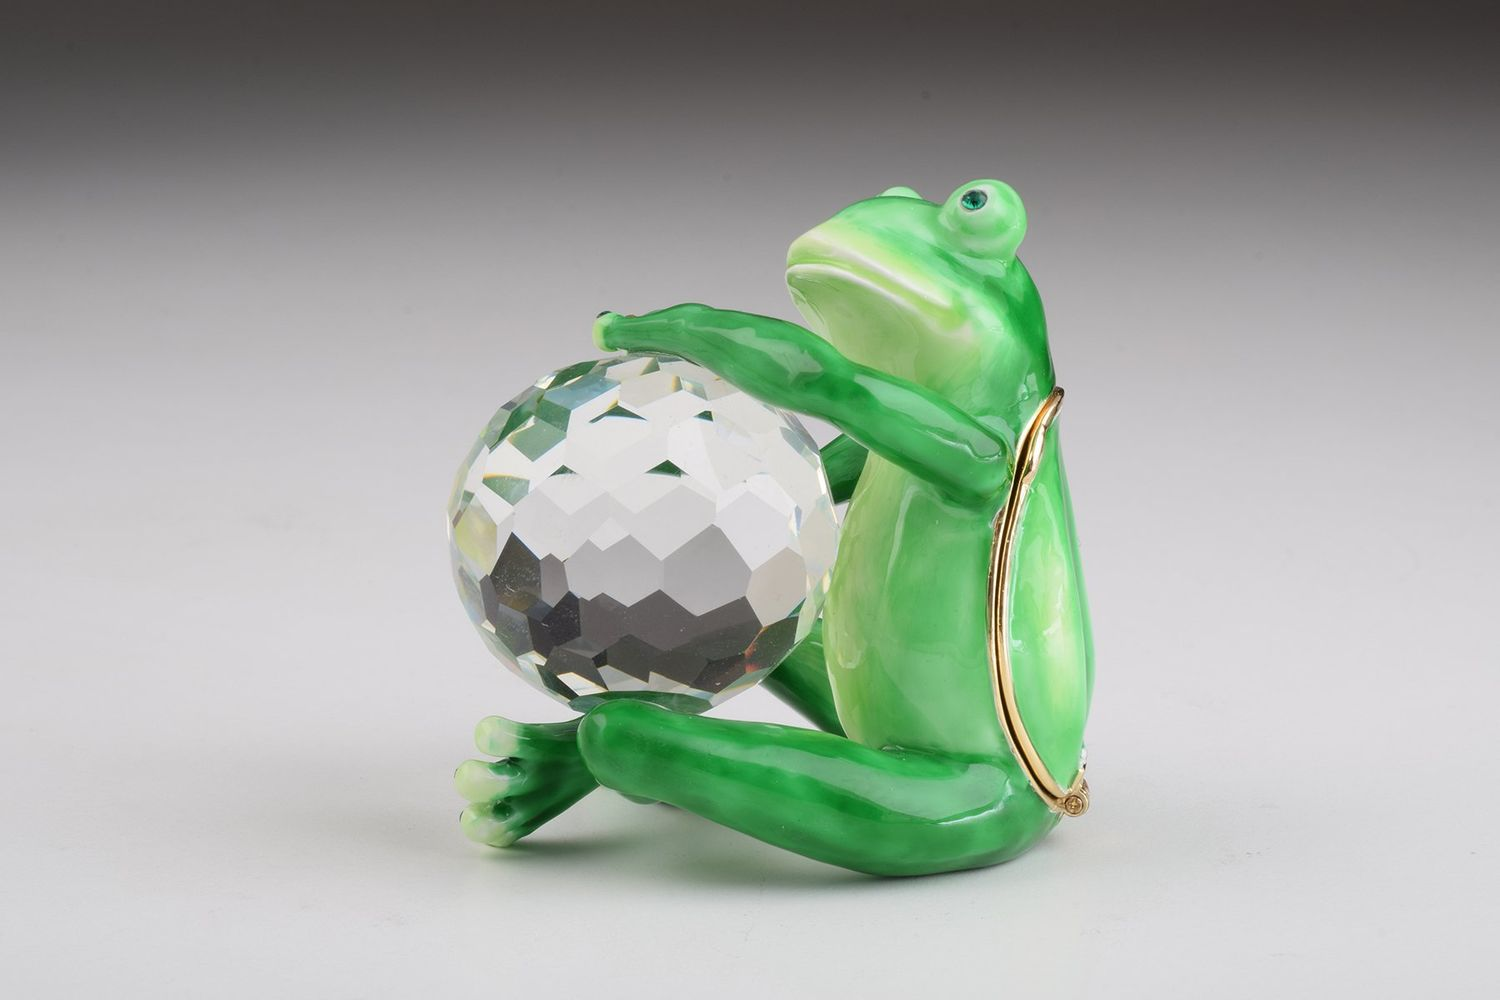 Green Frog with Crystal Ball